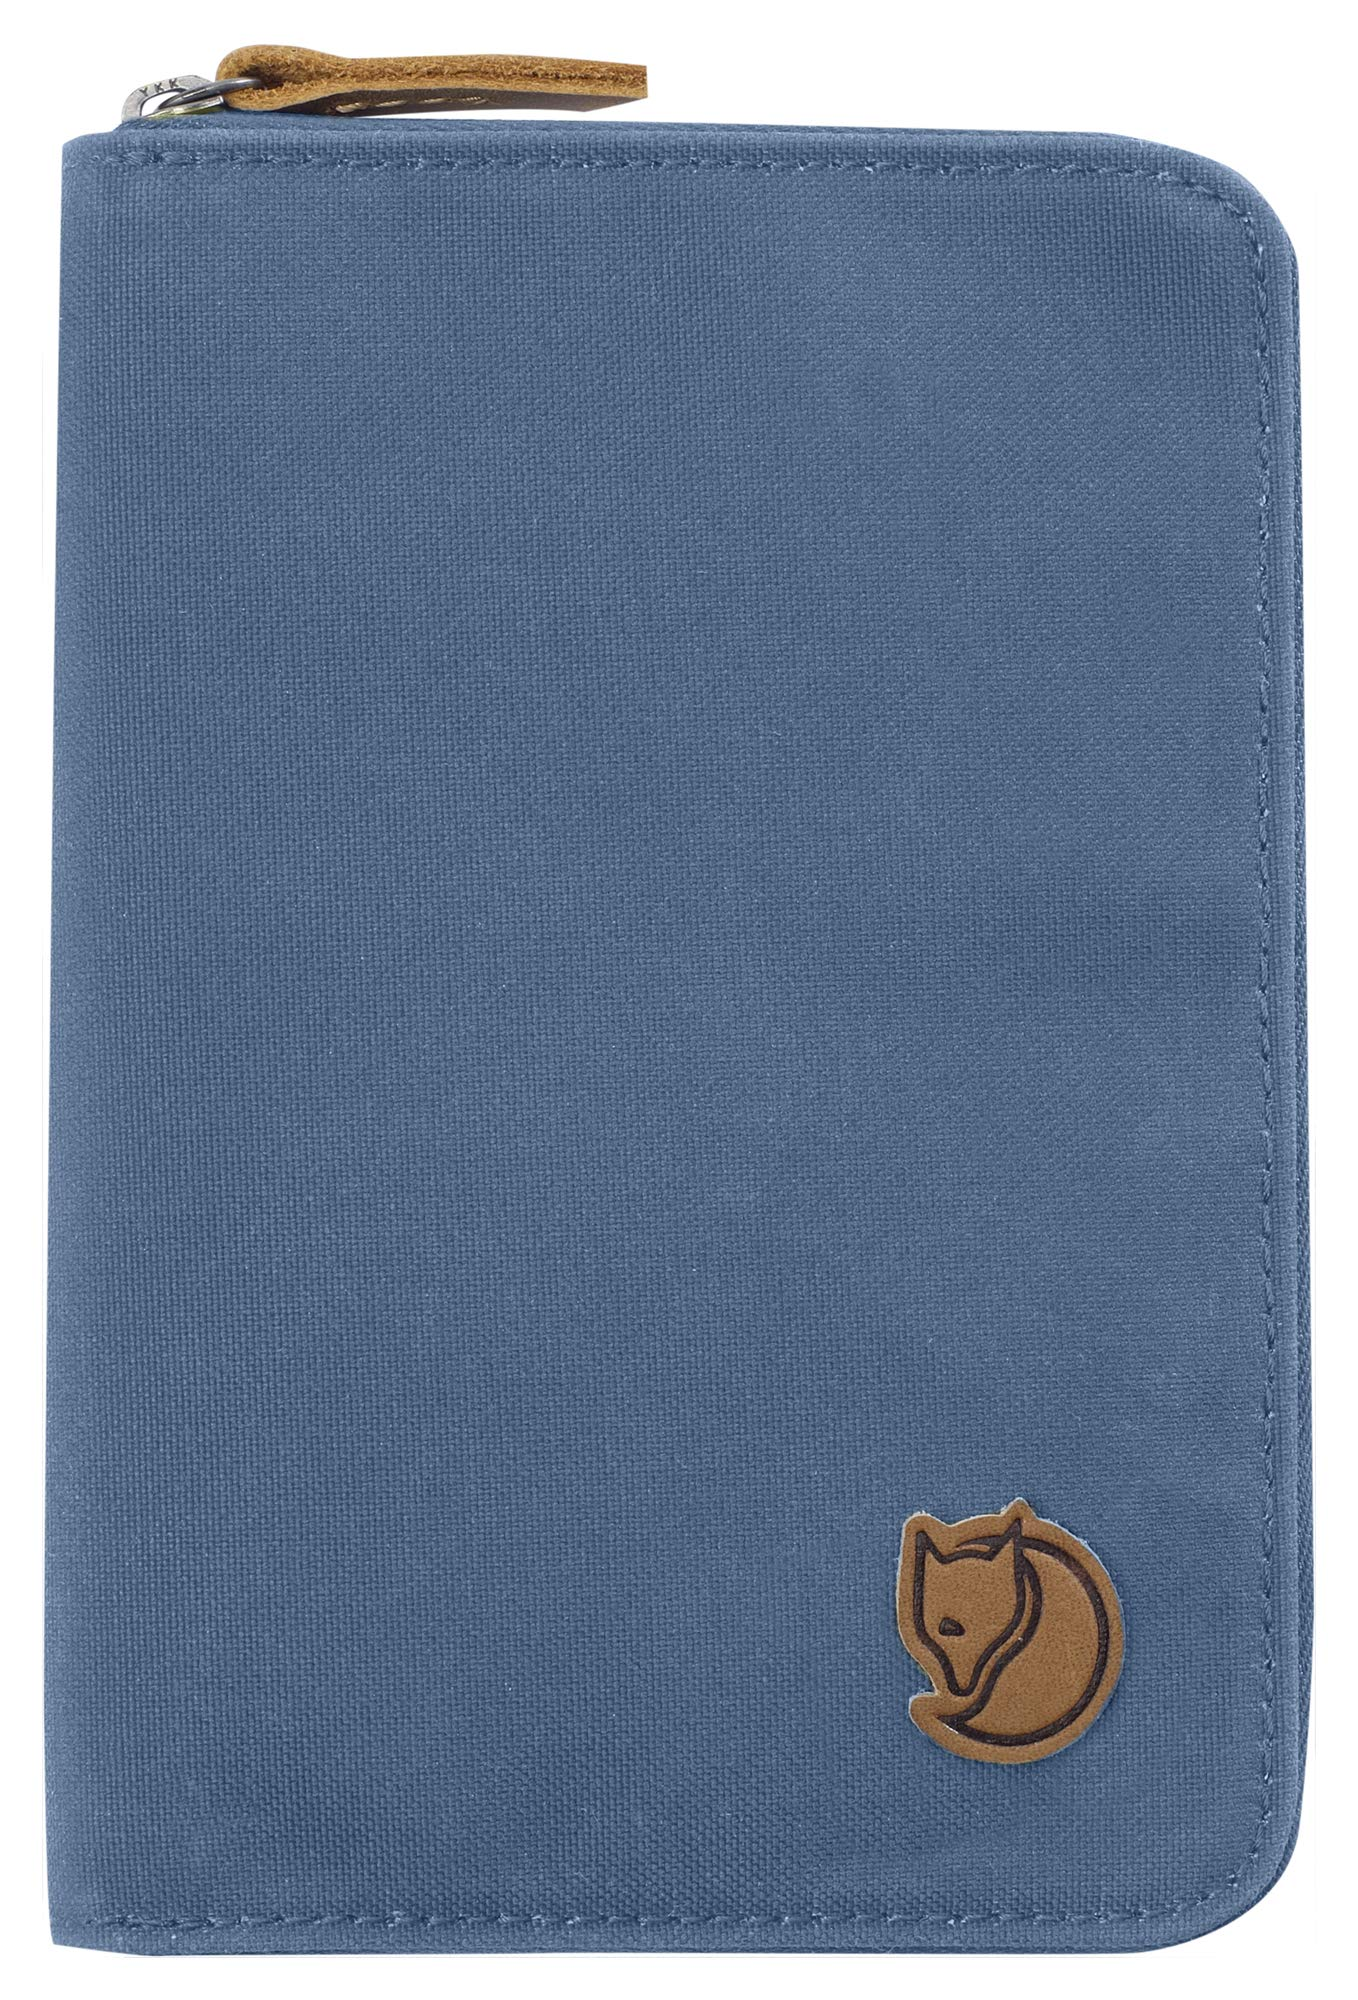 Fjallraven - Passport Wallet, Blue Ridge